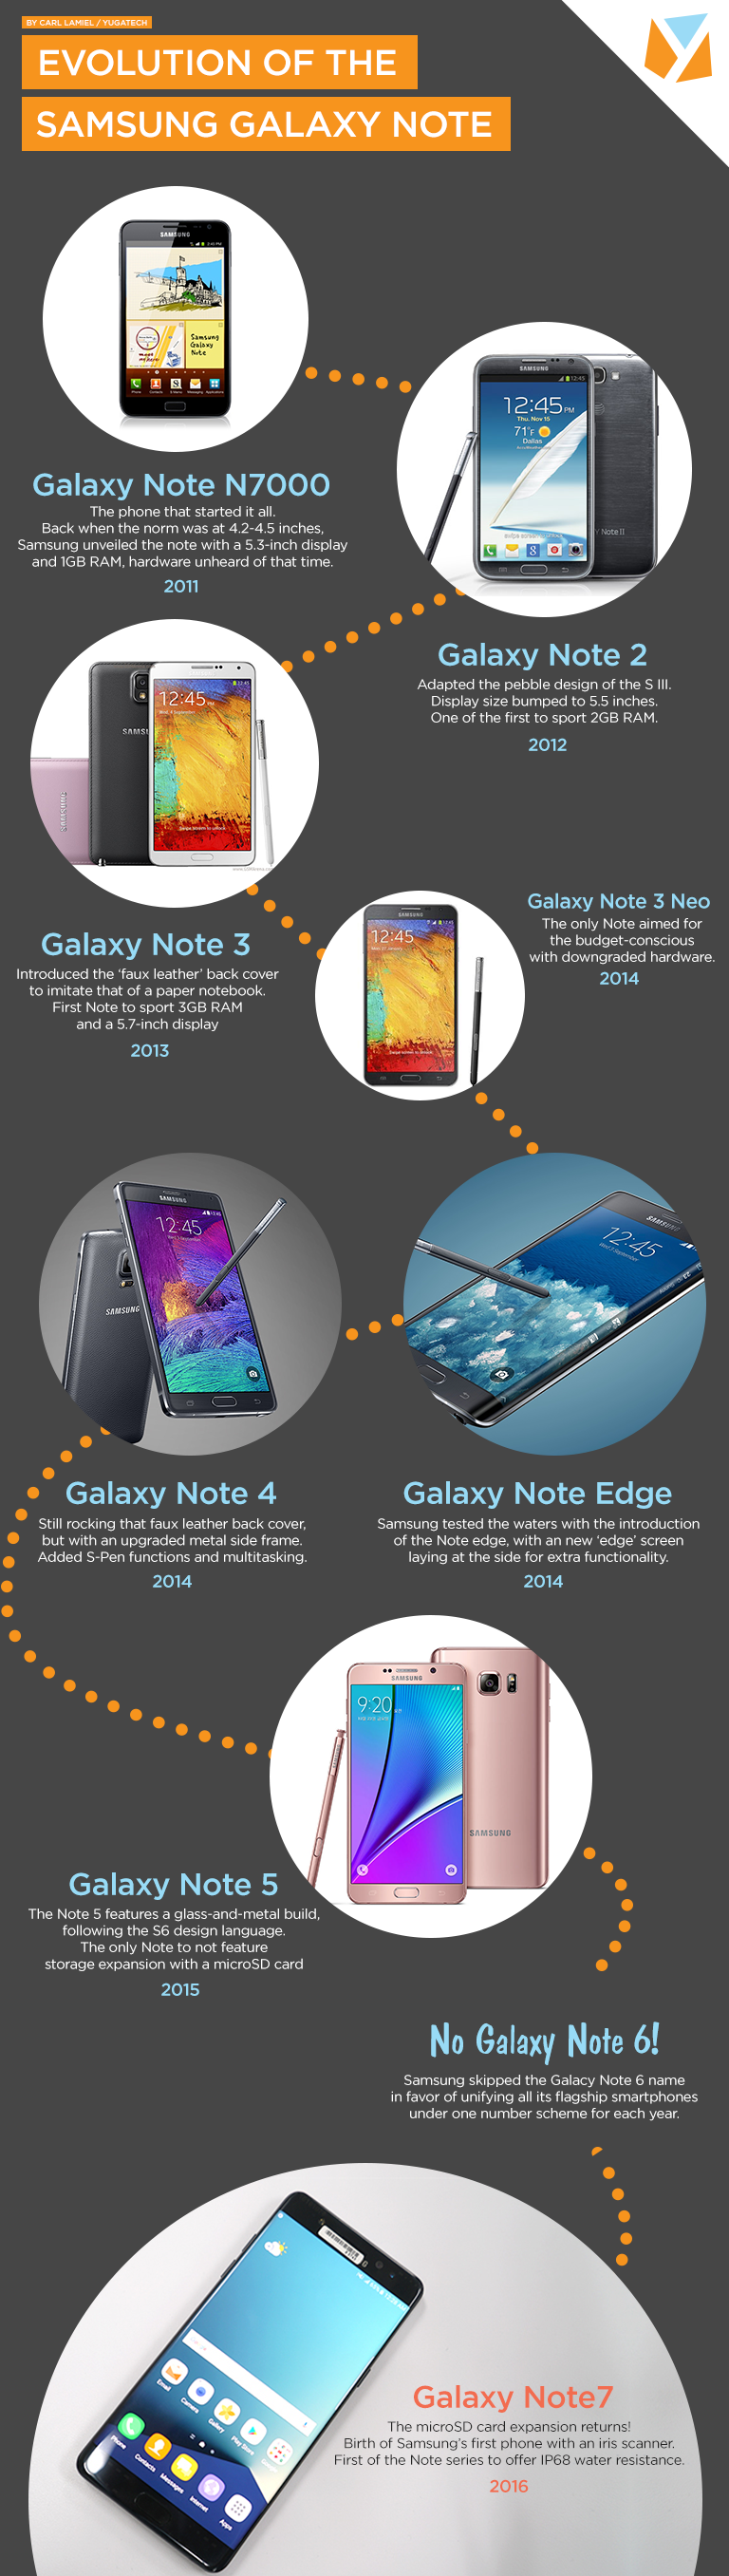 galaxynote-infographic